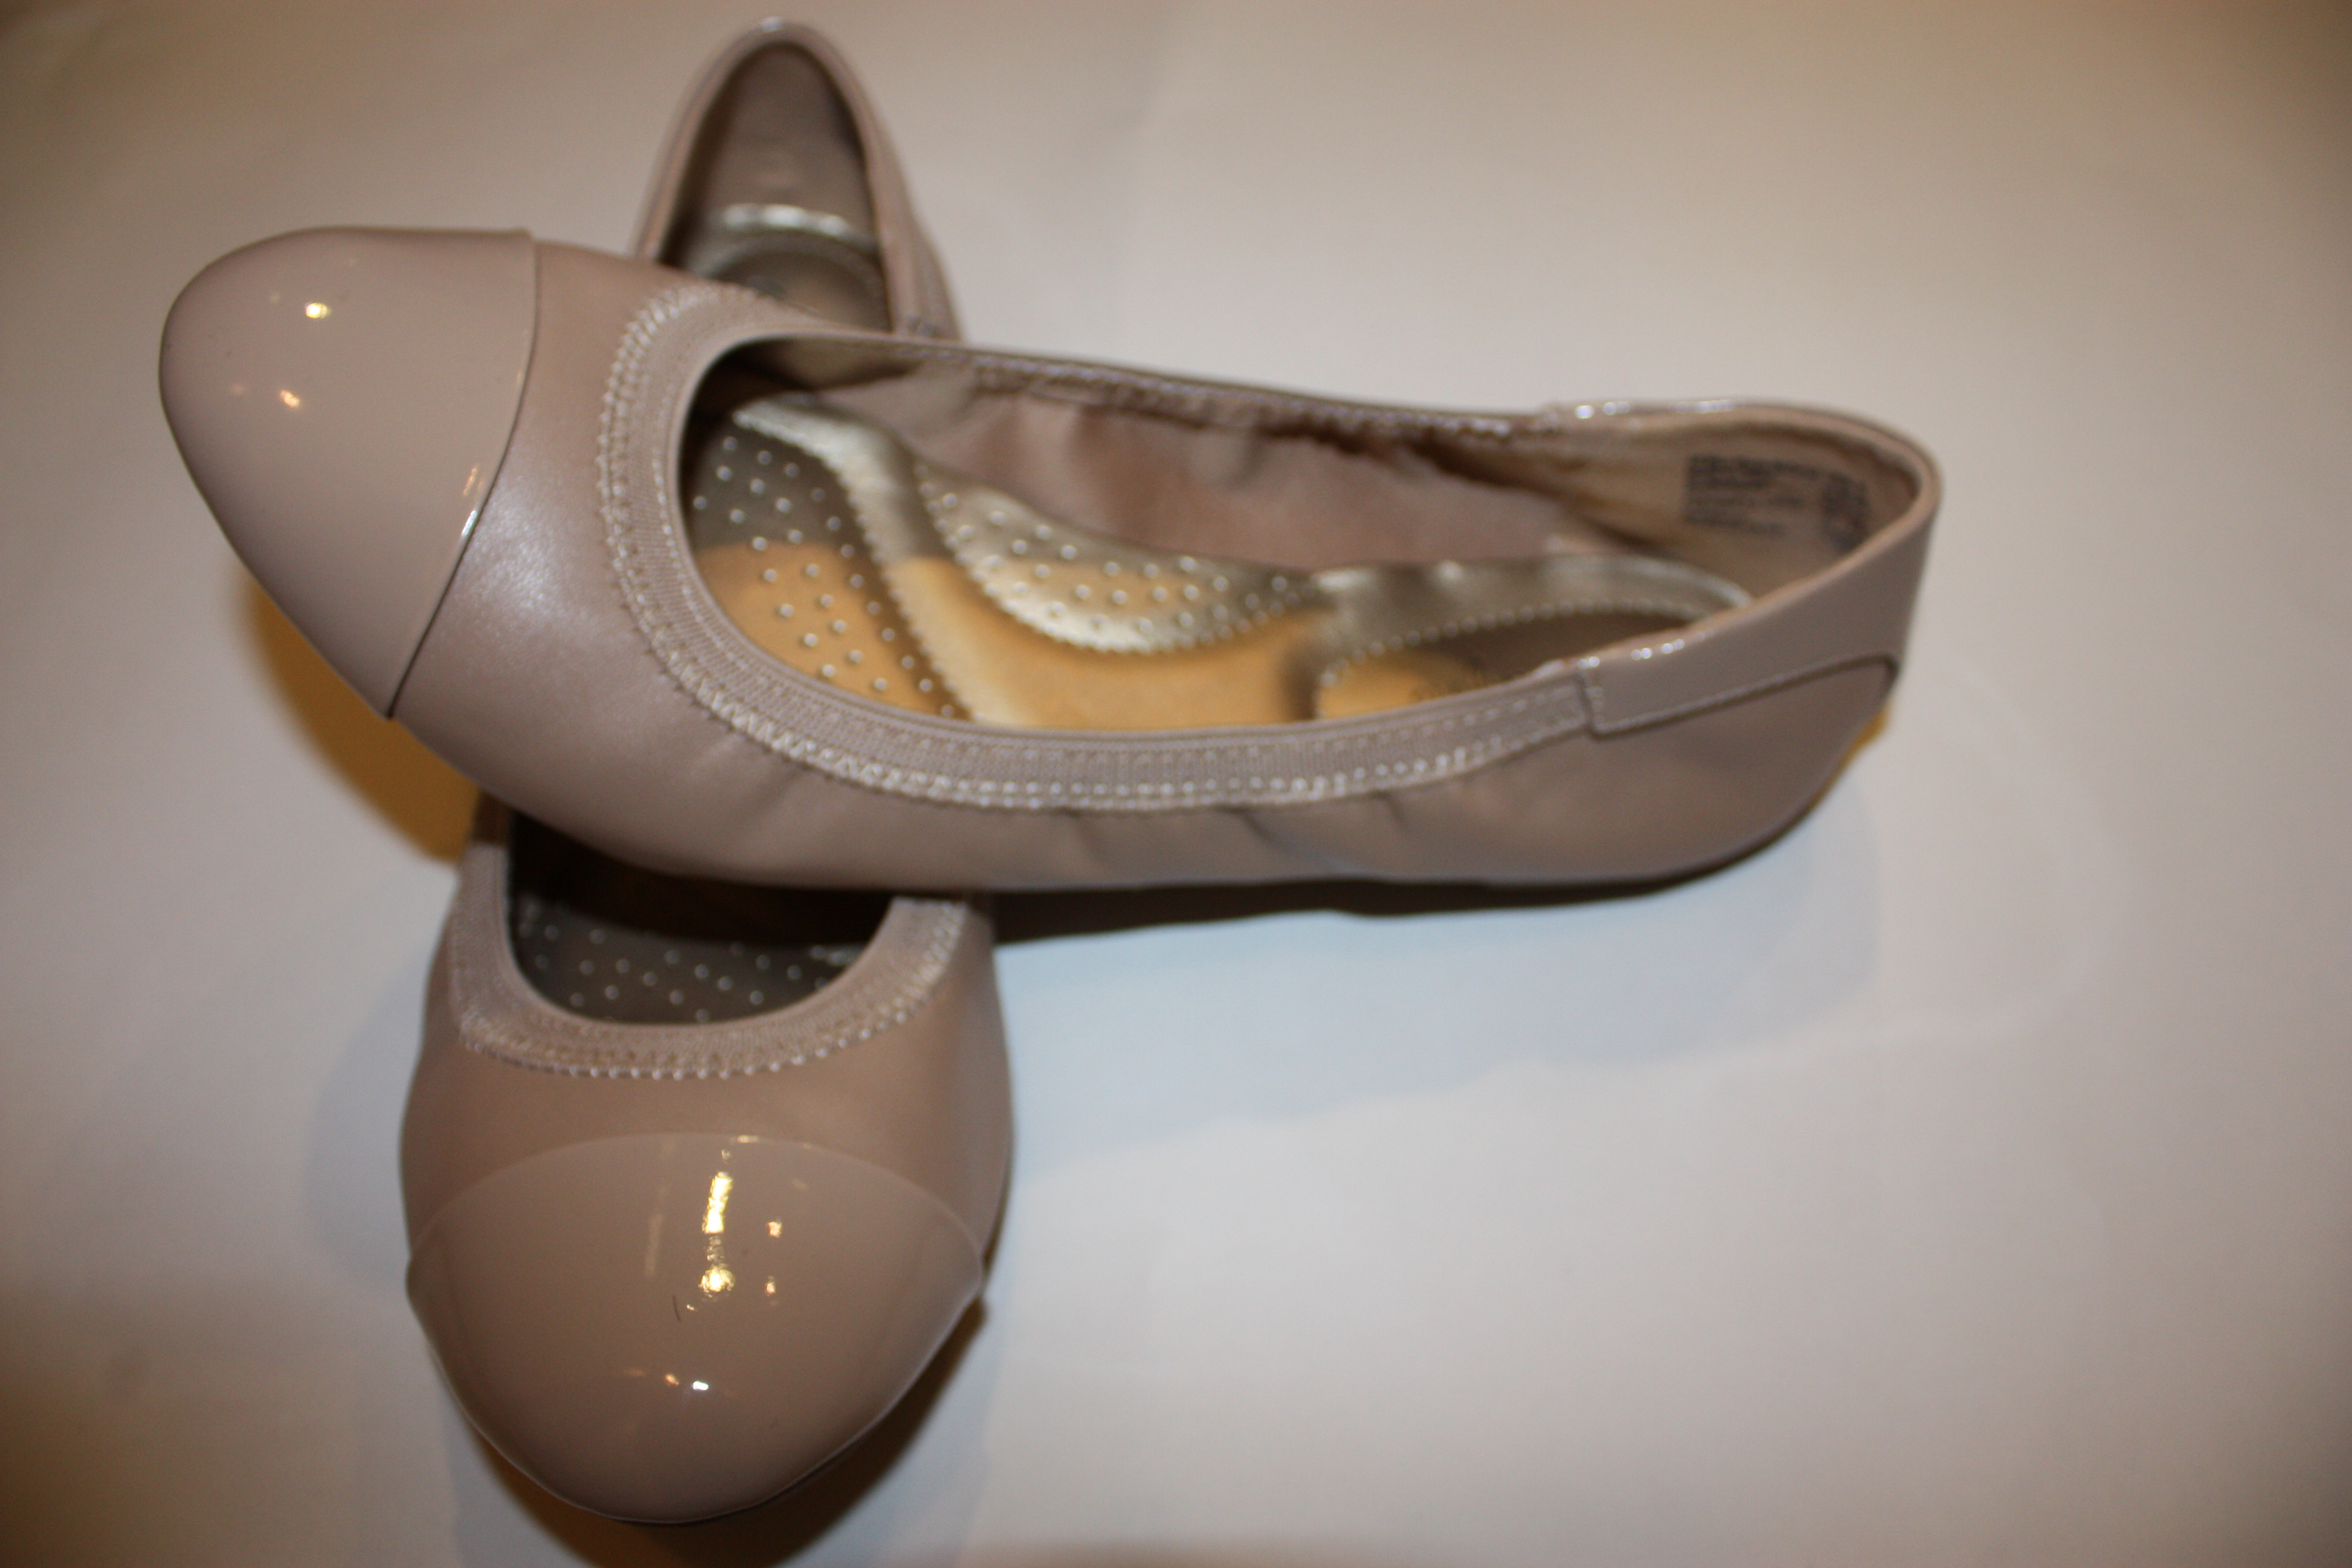 Ballerina flats from Payless Shoes